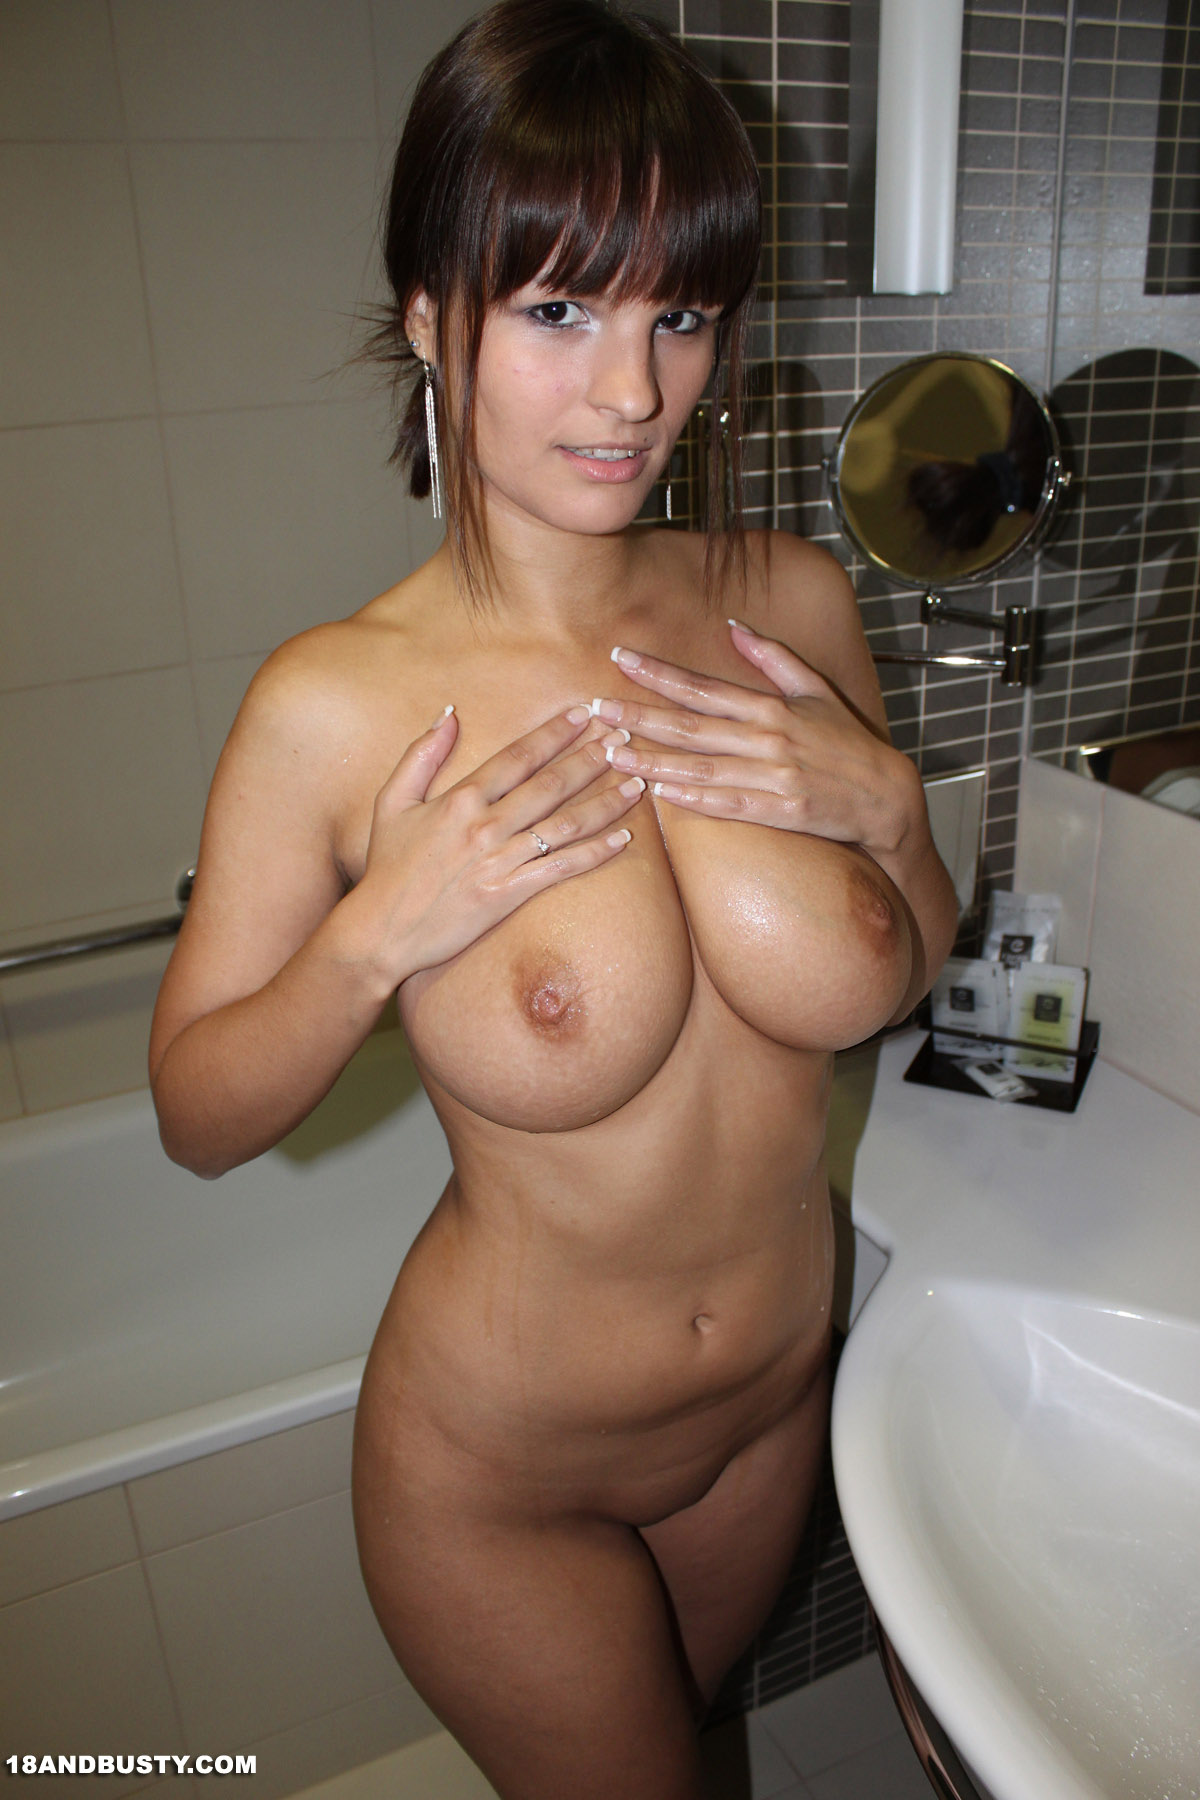 Sorry, Amateur wife big boobs nude selfie absolutely assured